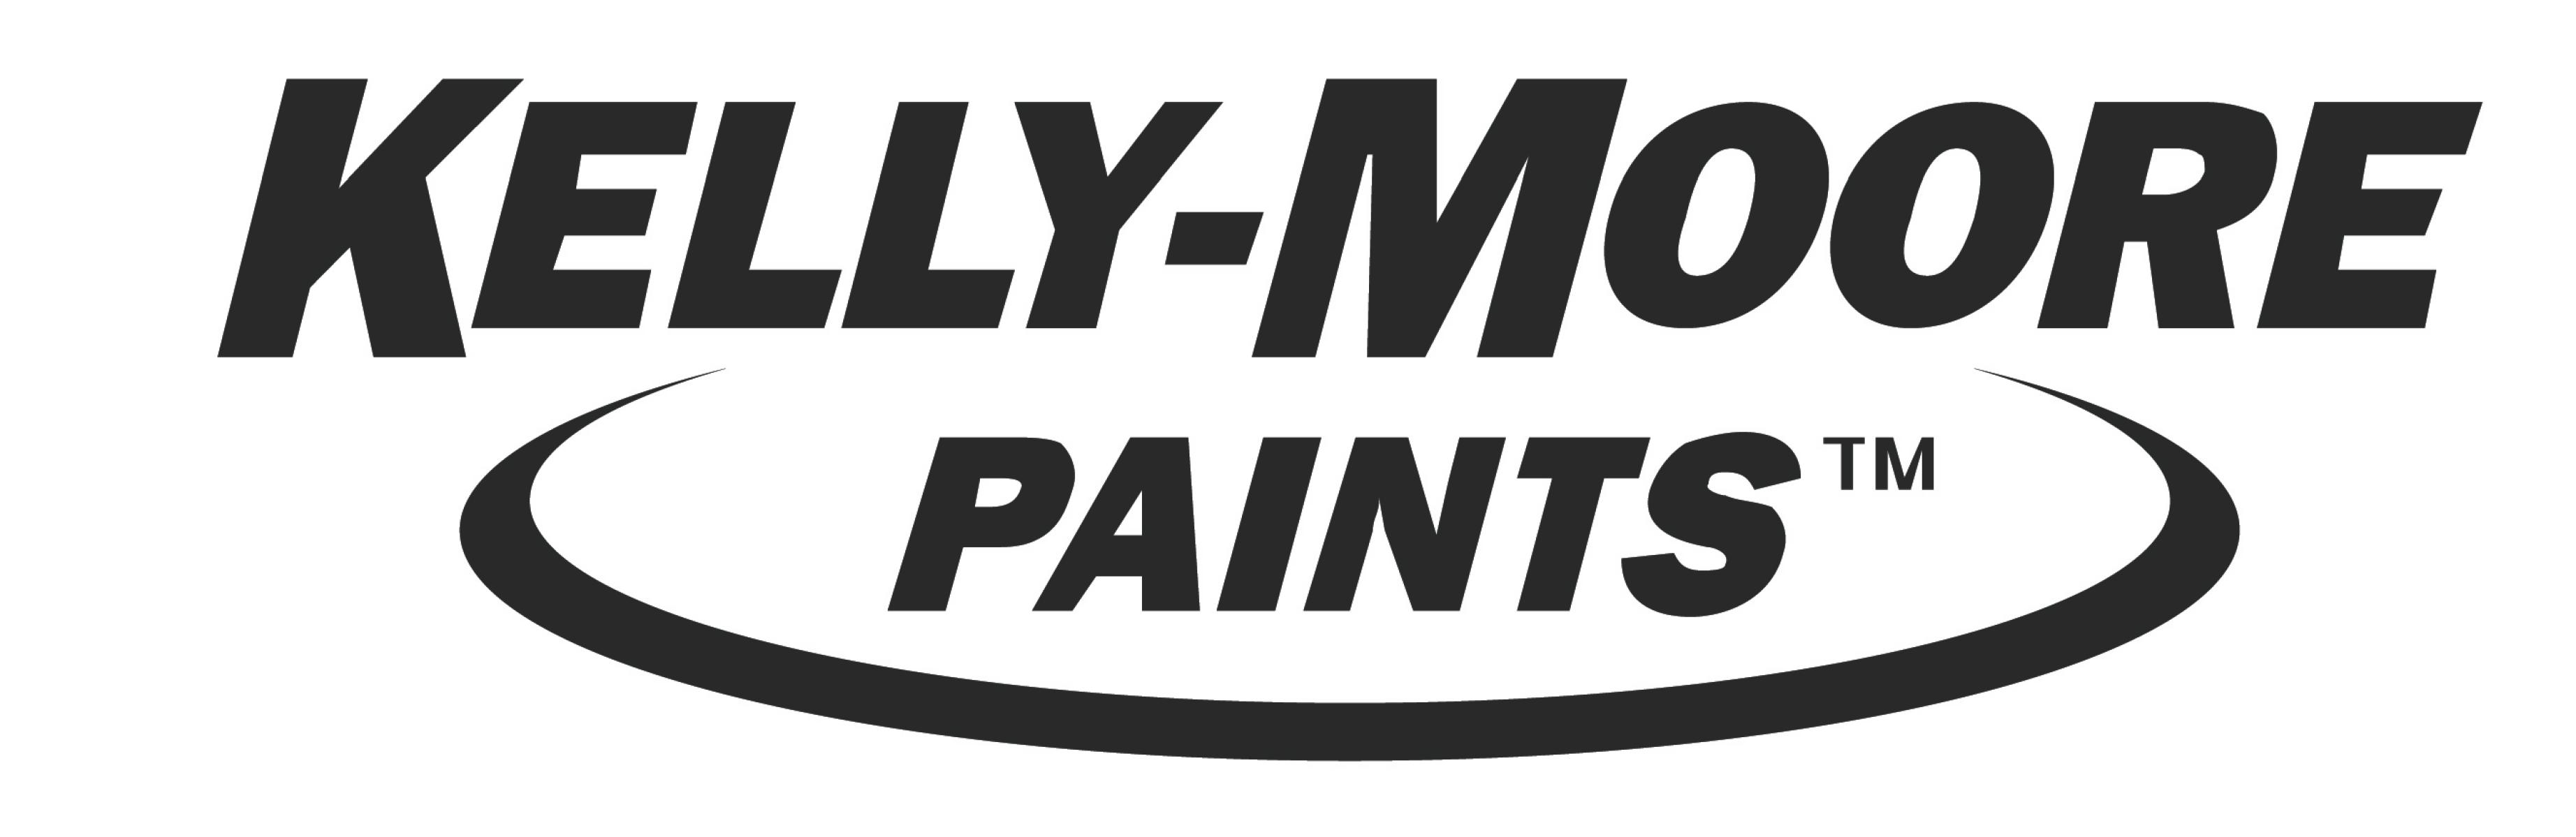 kelly moore paints logo